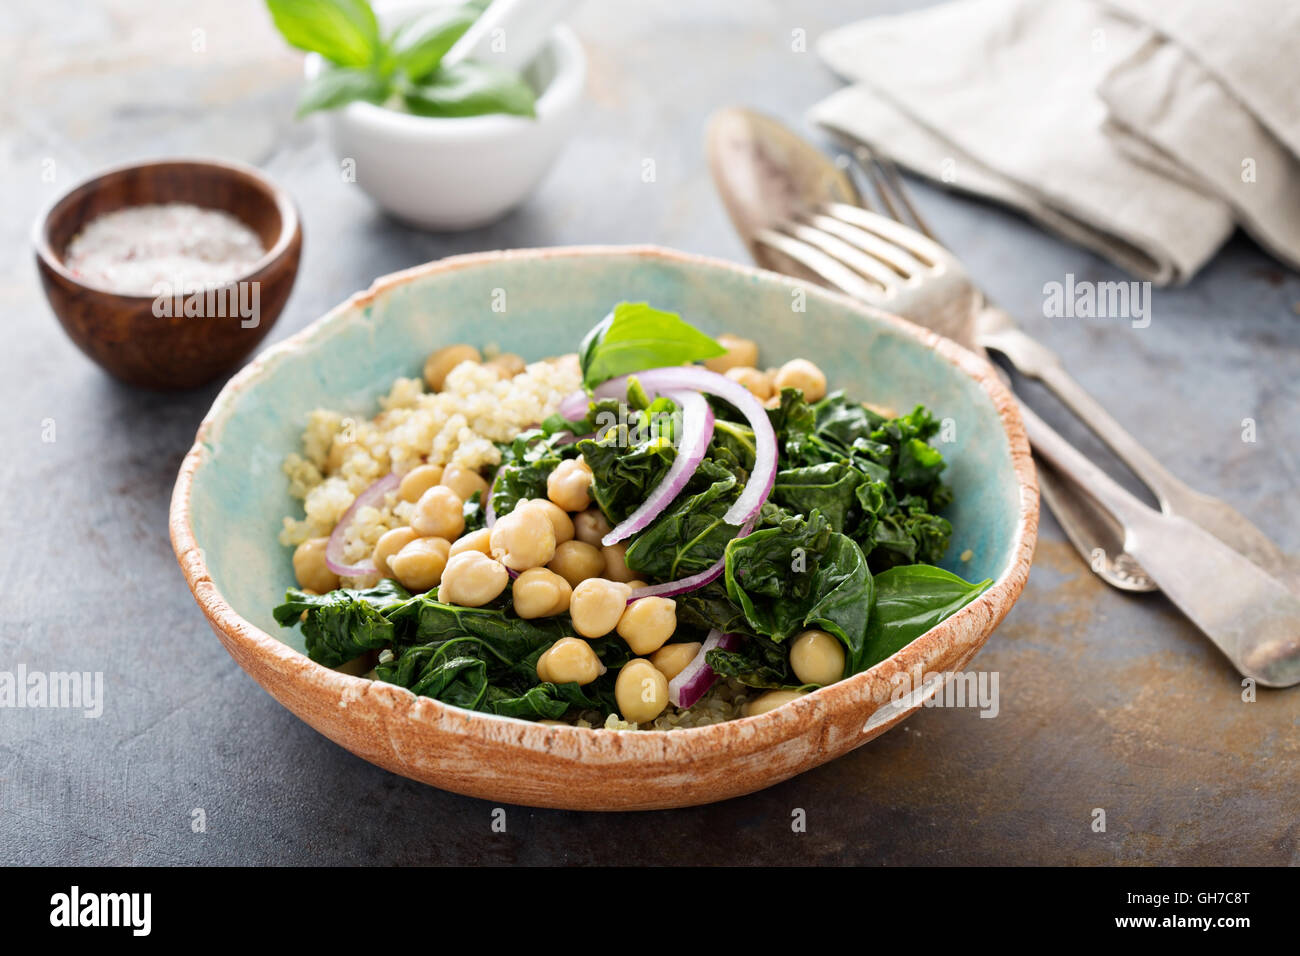 Warm salad with kale, chickpeas and quinoa - Stock Image